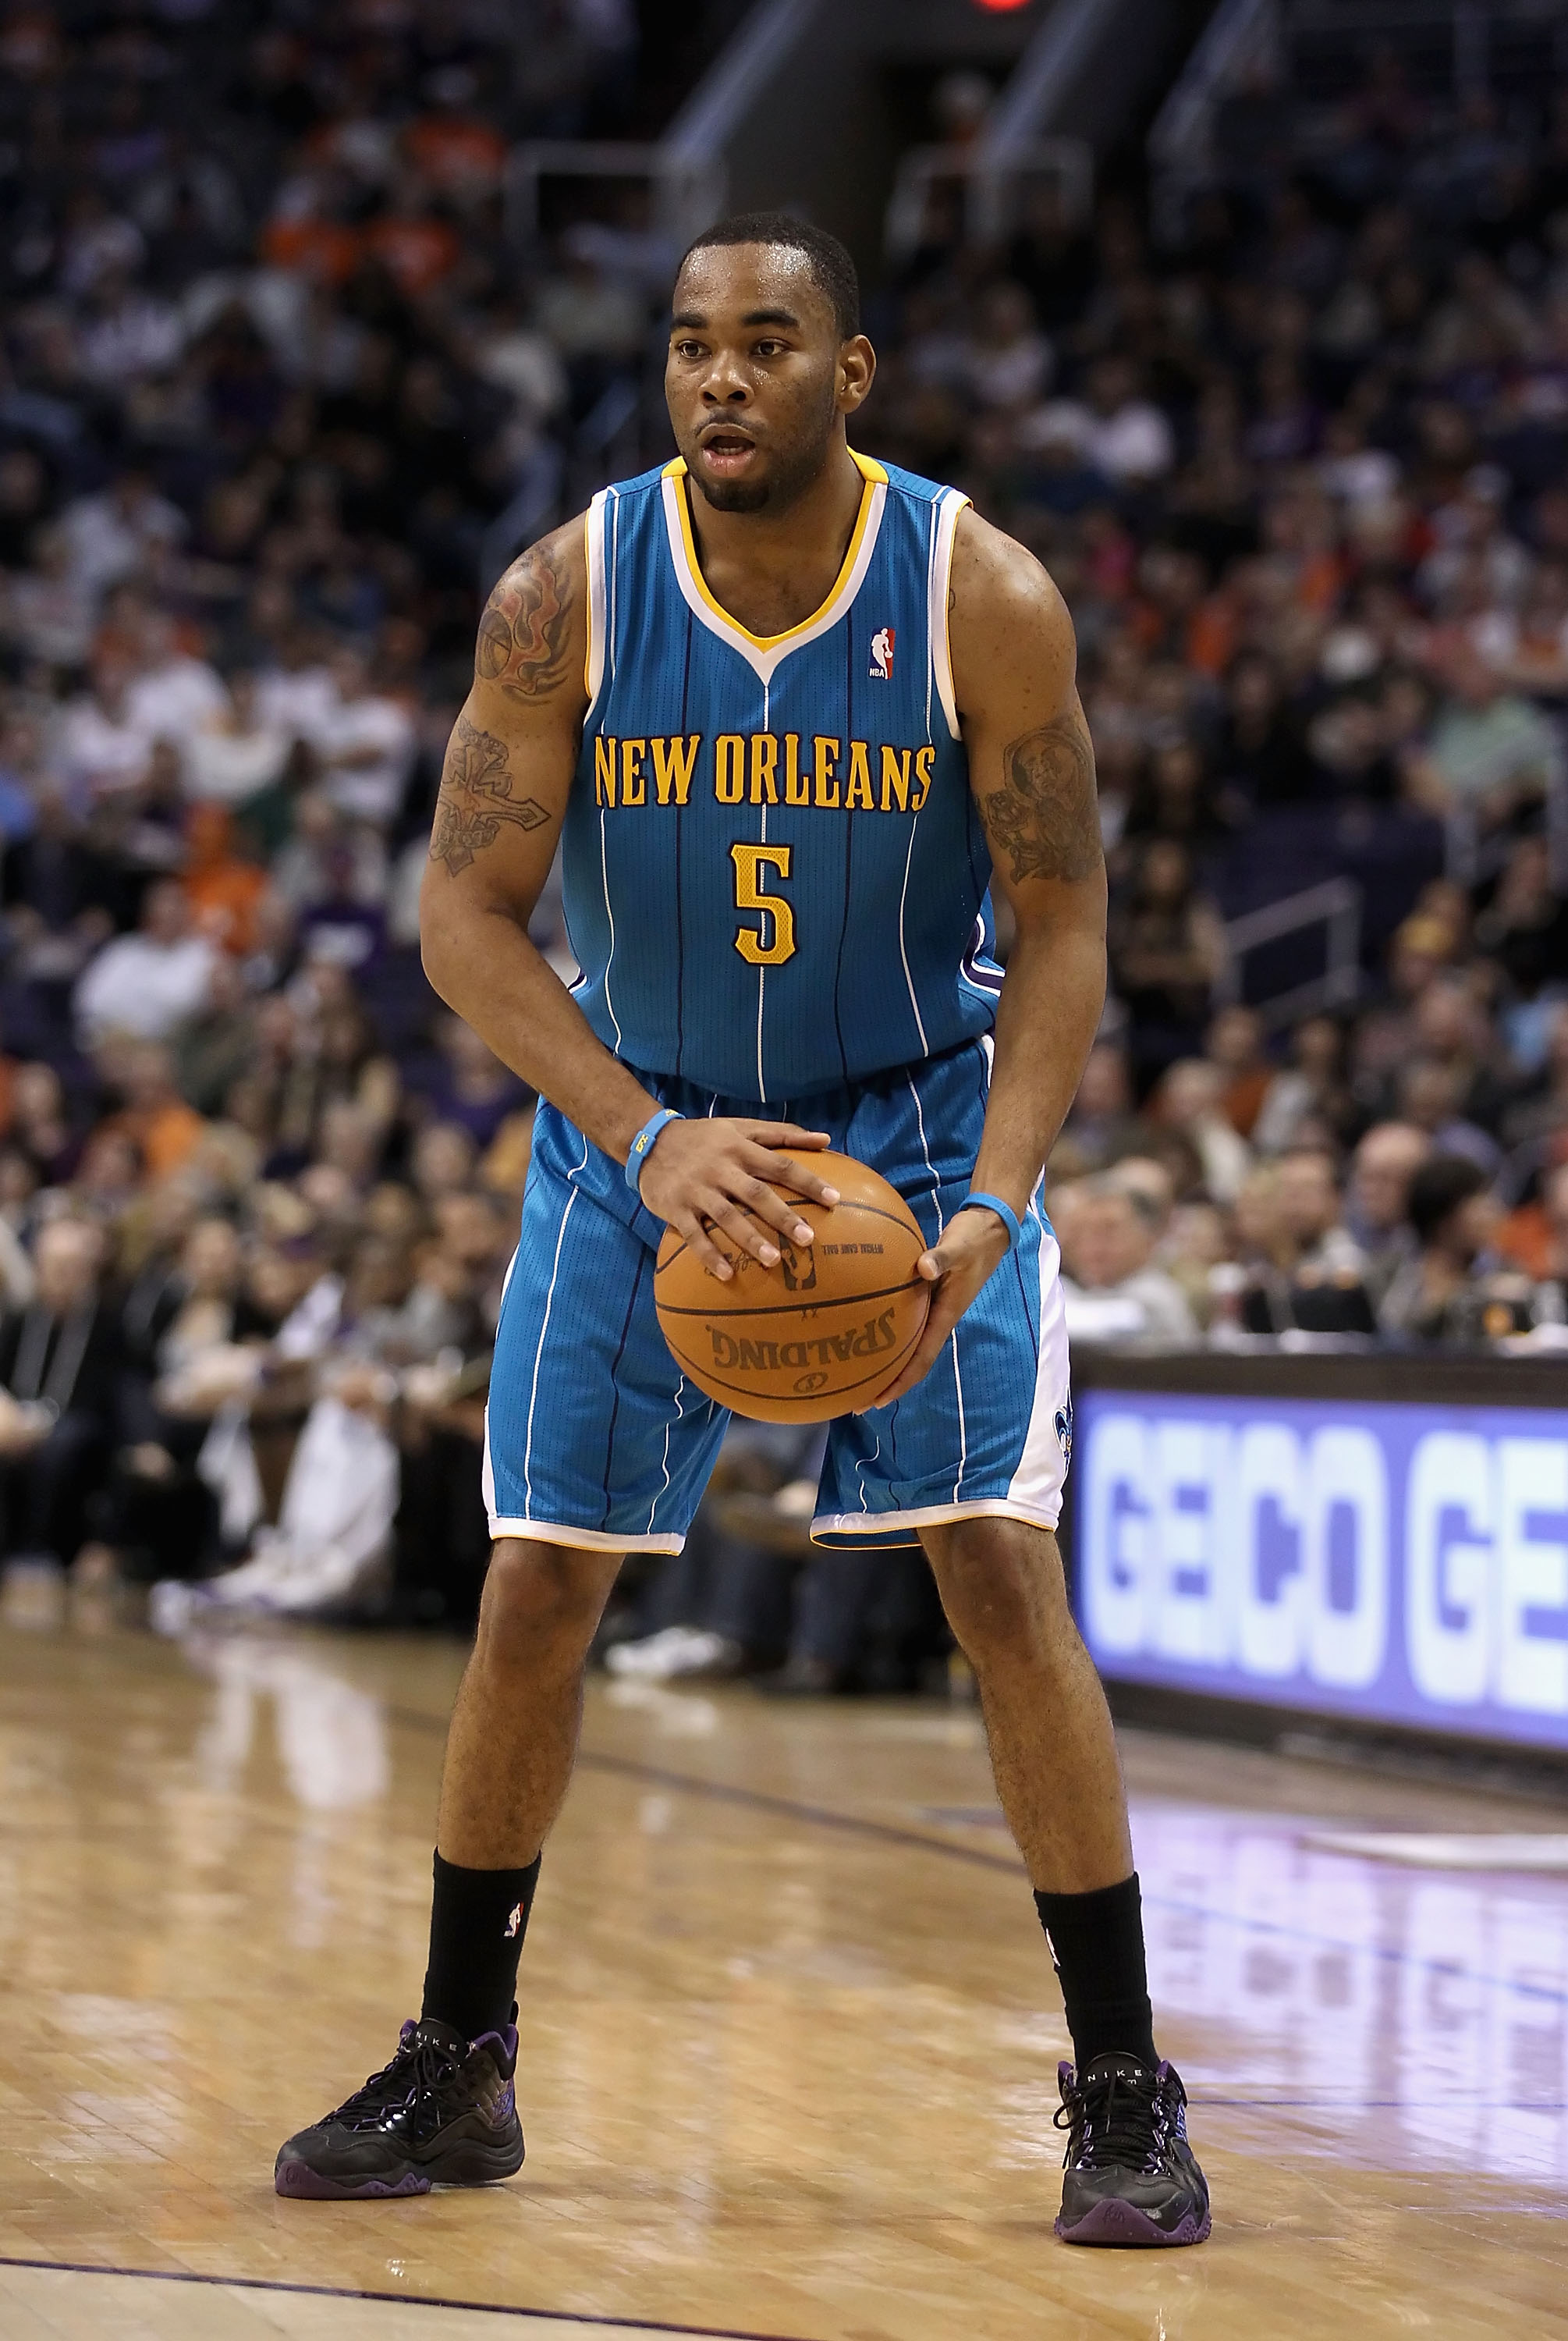 PHOENIX, AZ - JANUARY 30:  Marcus Thornton #5 of the New Orleans Hornets handles the ball during the NBA game against  the Phoenix Suns at US Airways Center on January 30, 2011 in Phoenix, Arizona.  The Suns defeated the Hornets 104-102. NOTE TO USER: Use